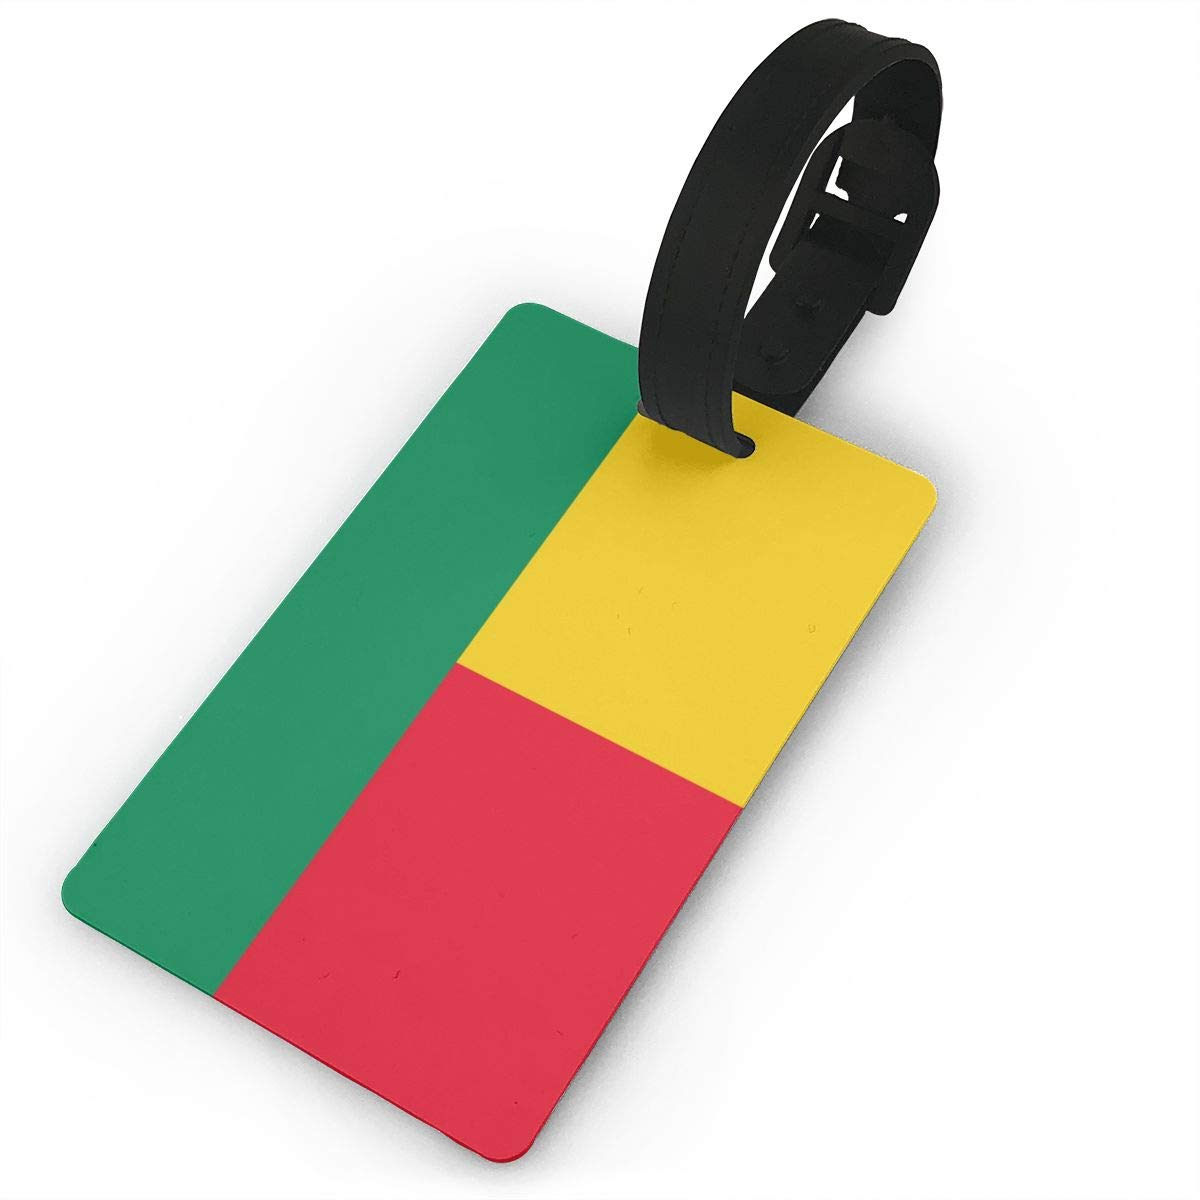 NB UUD Benin Flag Travel Luggage Tag Fashionable Employees Card Luggage Tag Holders Travel ID Identification Labels for Baggage Suitcases Bags